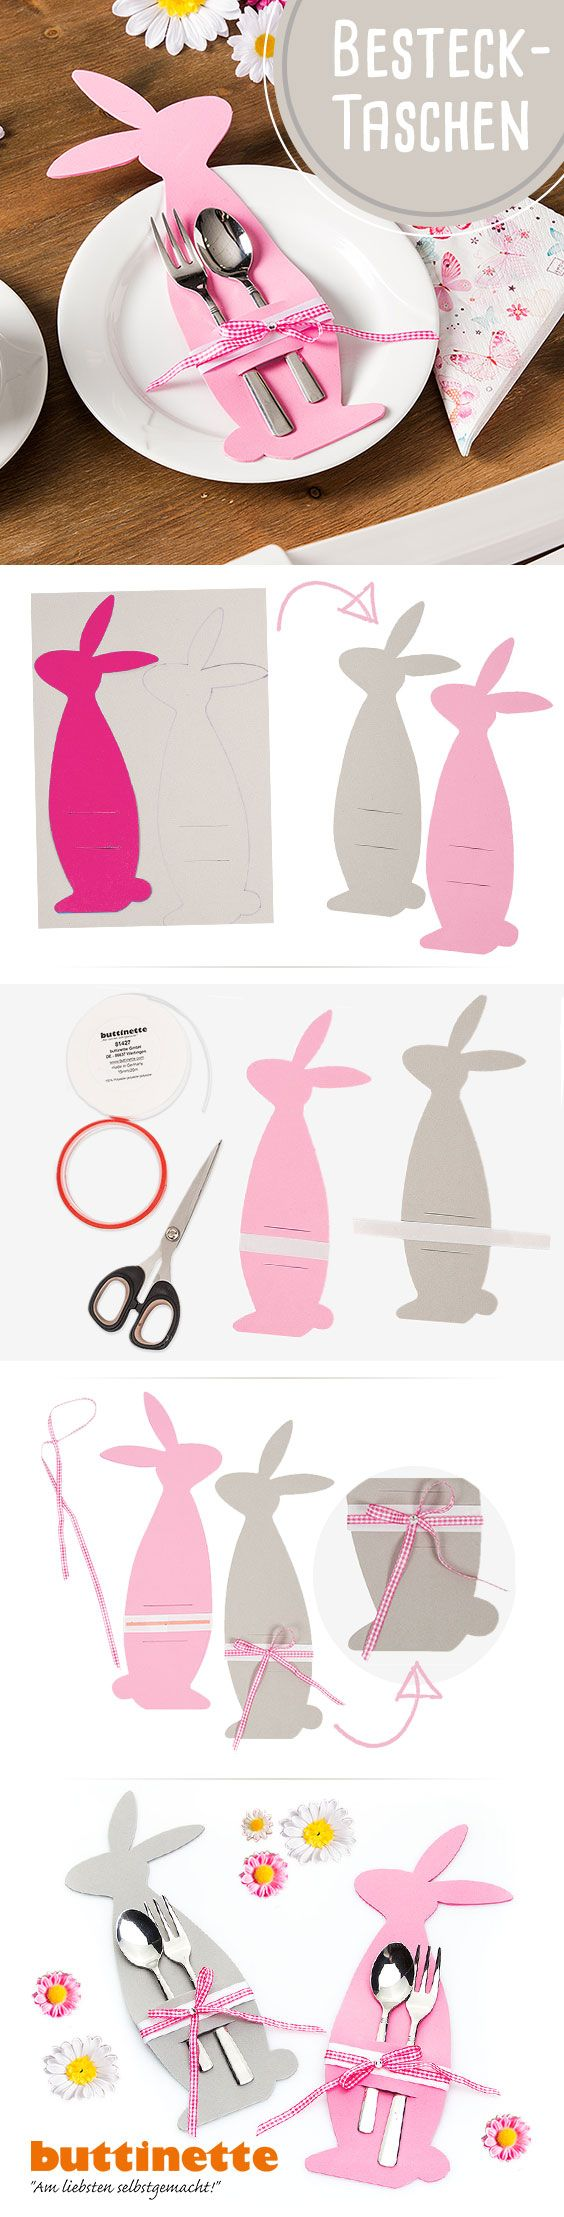 Cute and quick dyi deco idea for Easter table arrangement or a spring picnic with the kids <3 <3